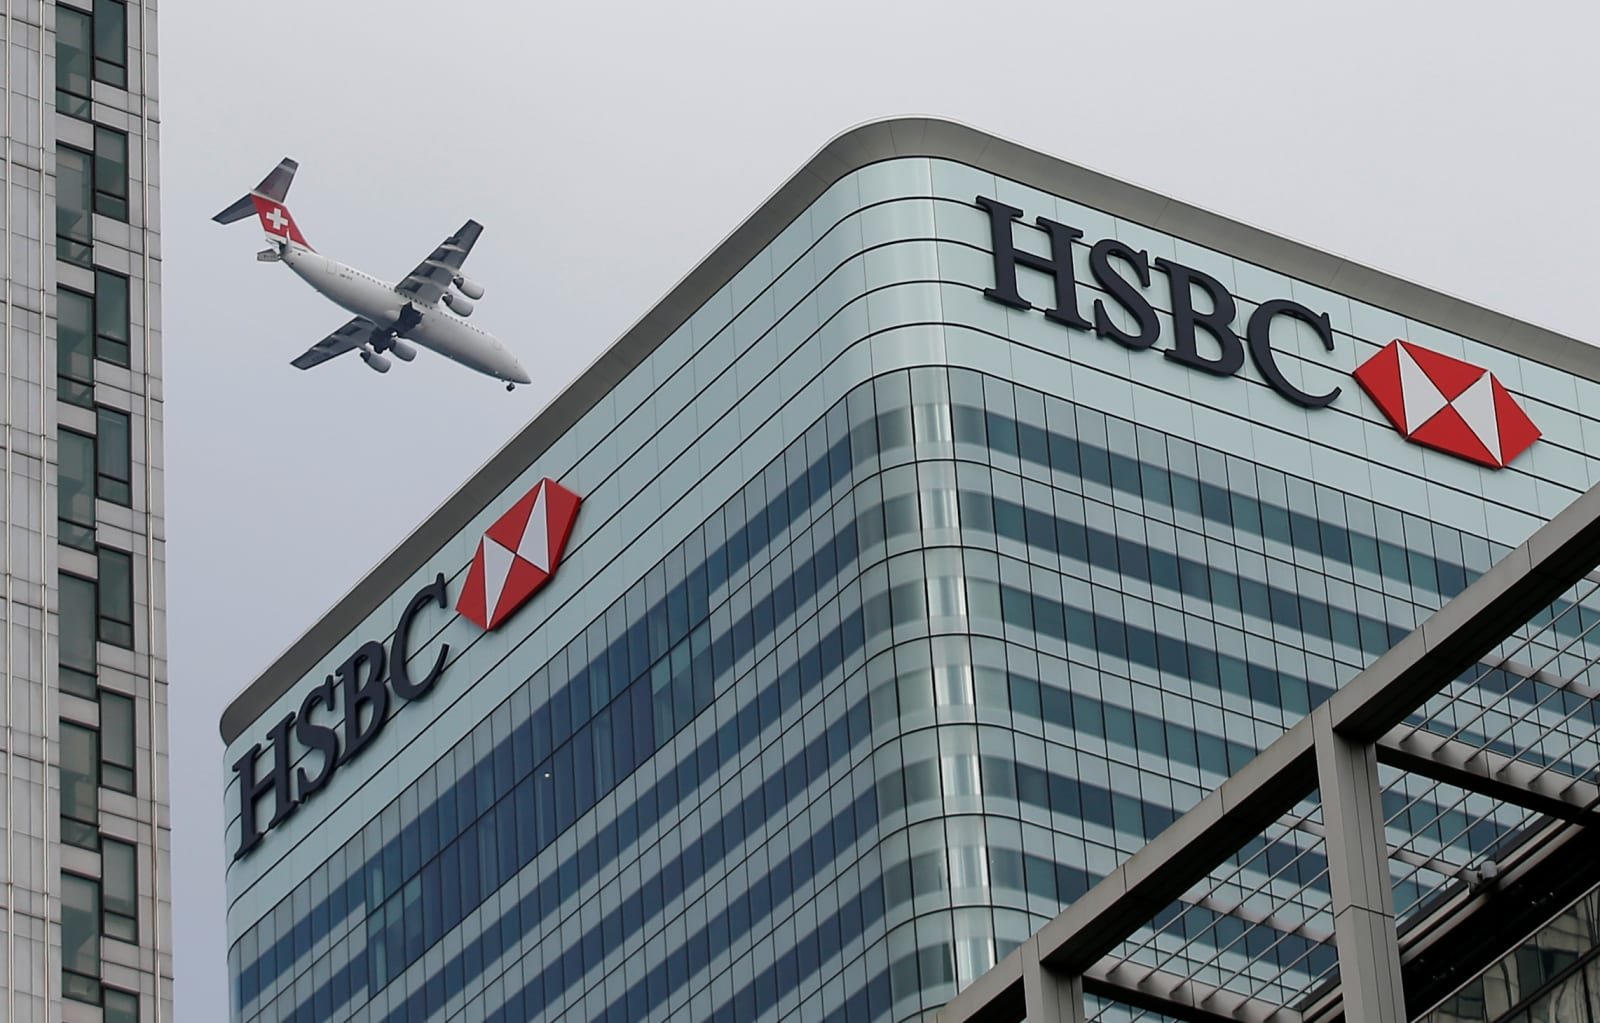 Hsbc app will let you manage accounts from multiple banks peter nicholls reuters thecheapjerseys Gallery